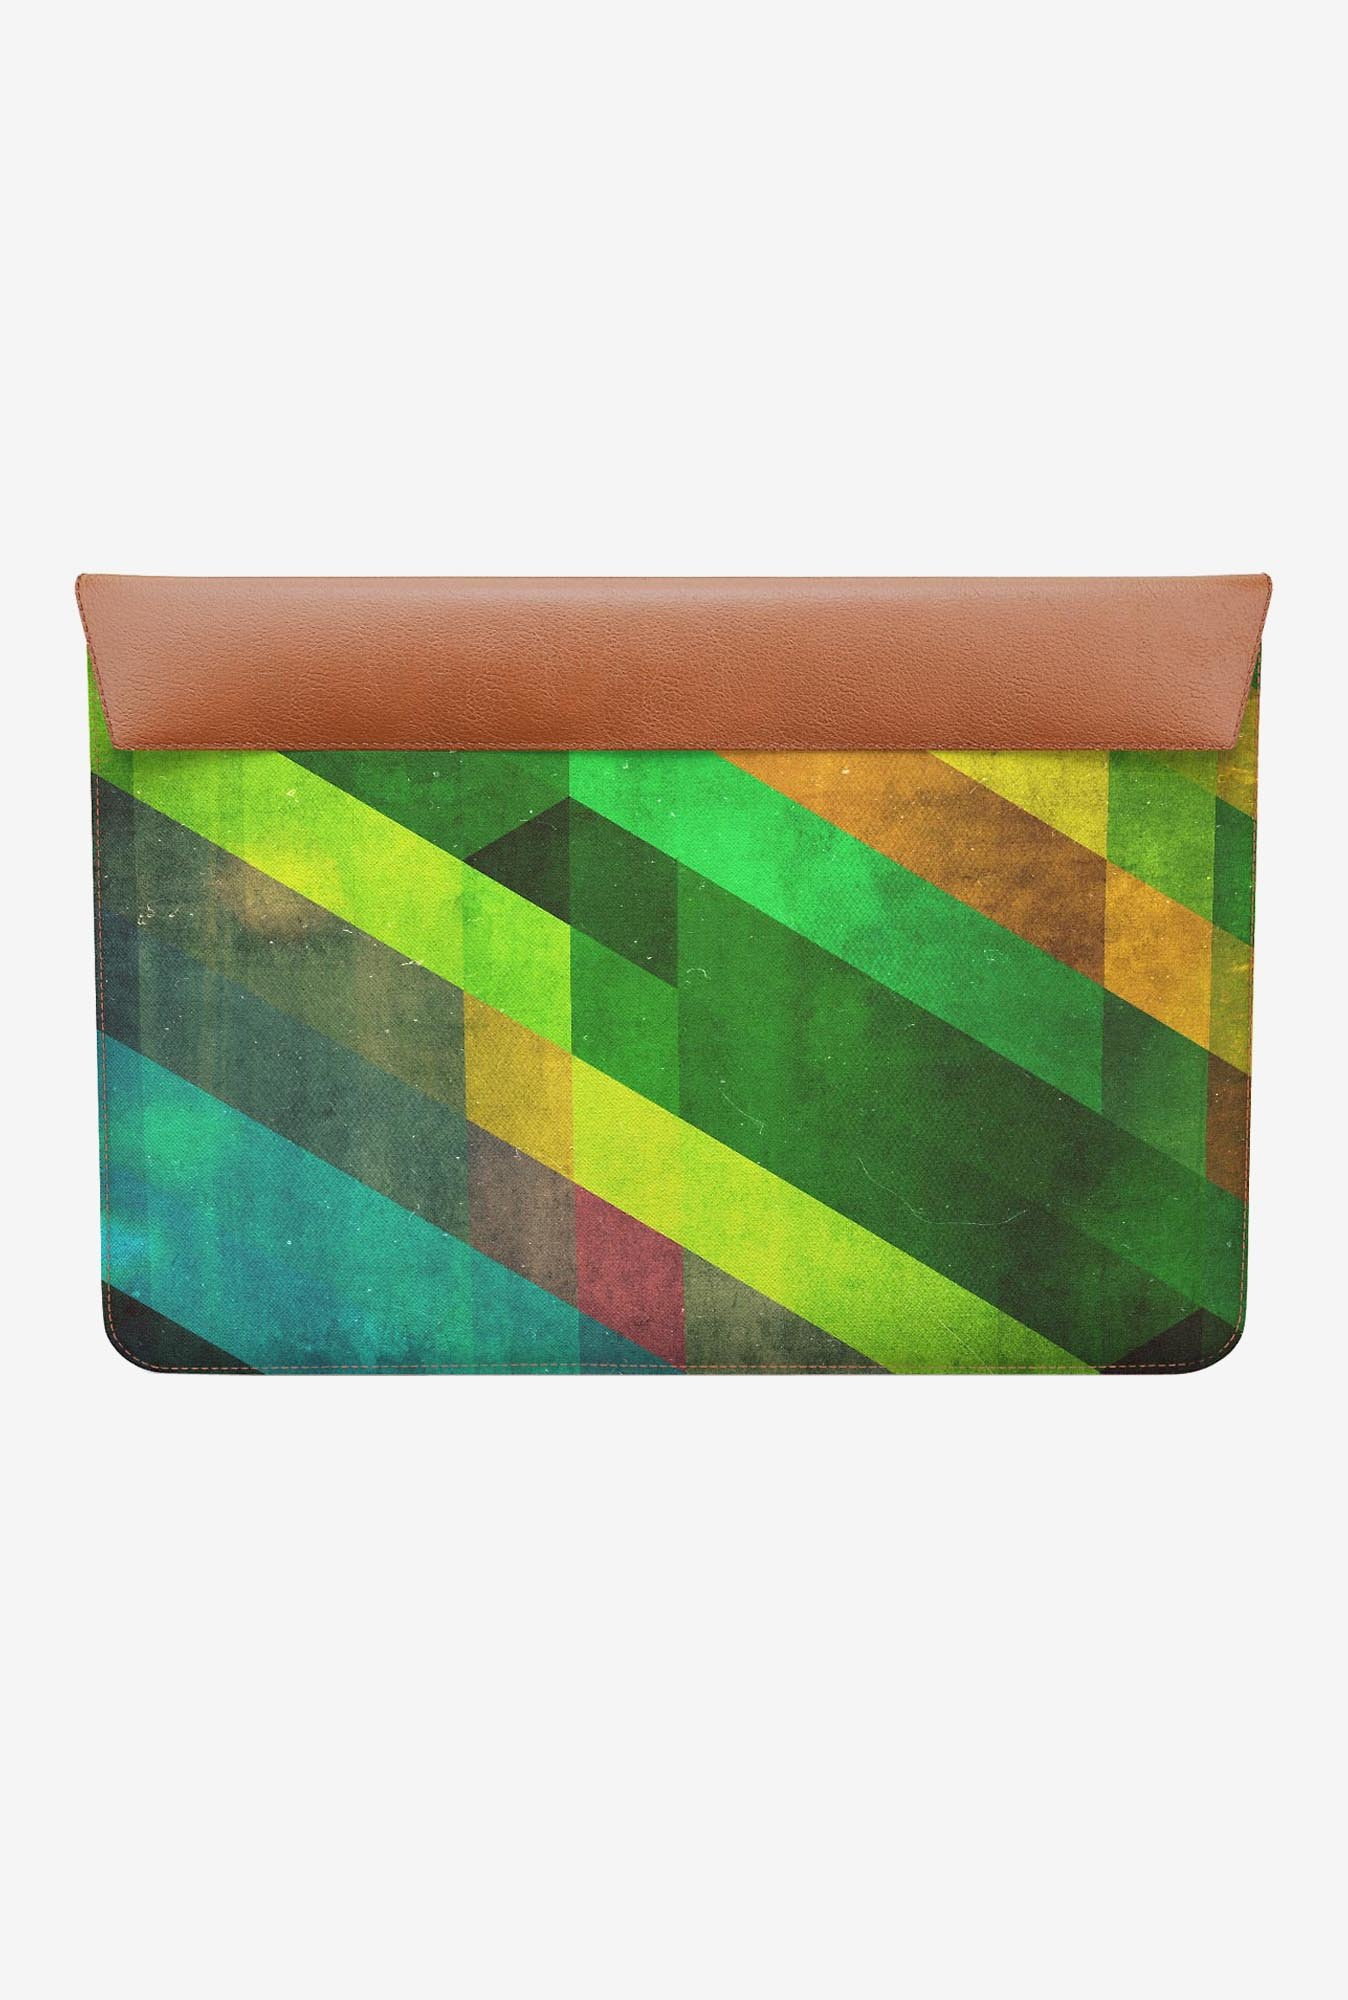 "DailyObjects Lyyn Wyrk Macbook Air 11"" Envelope Sleeve"